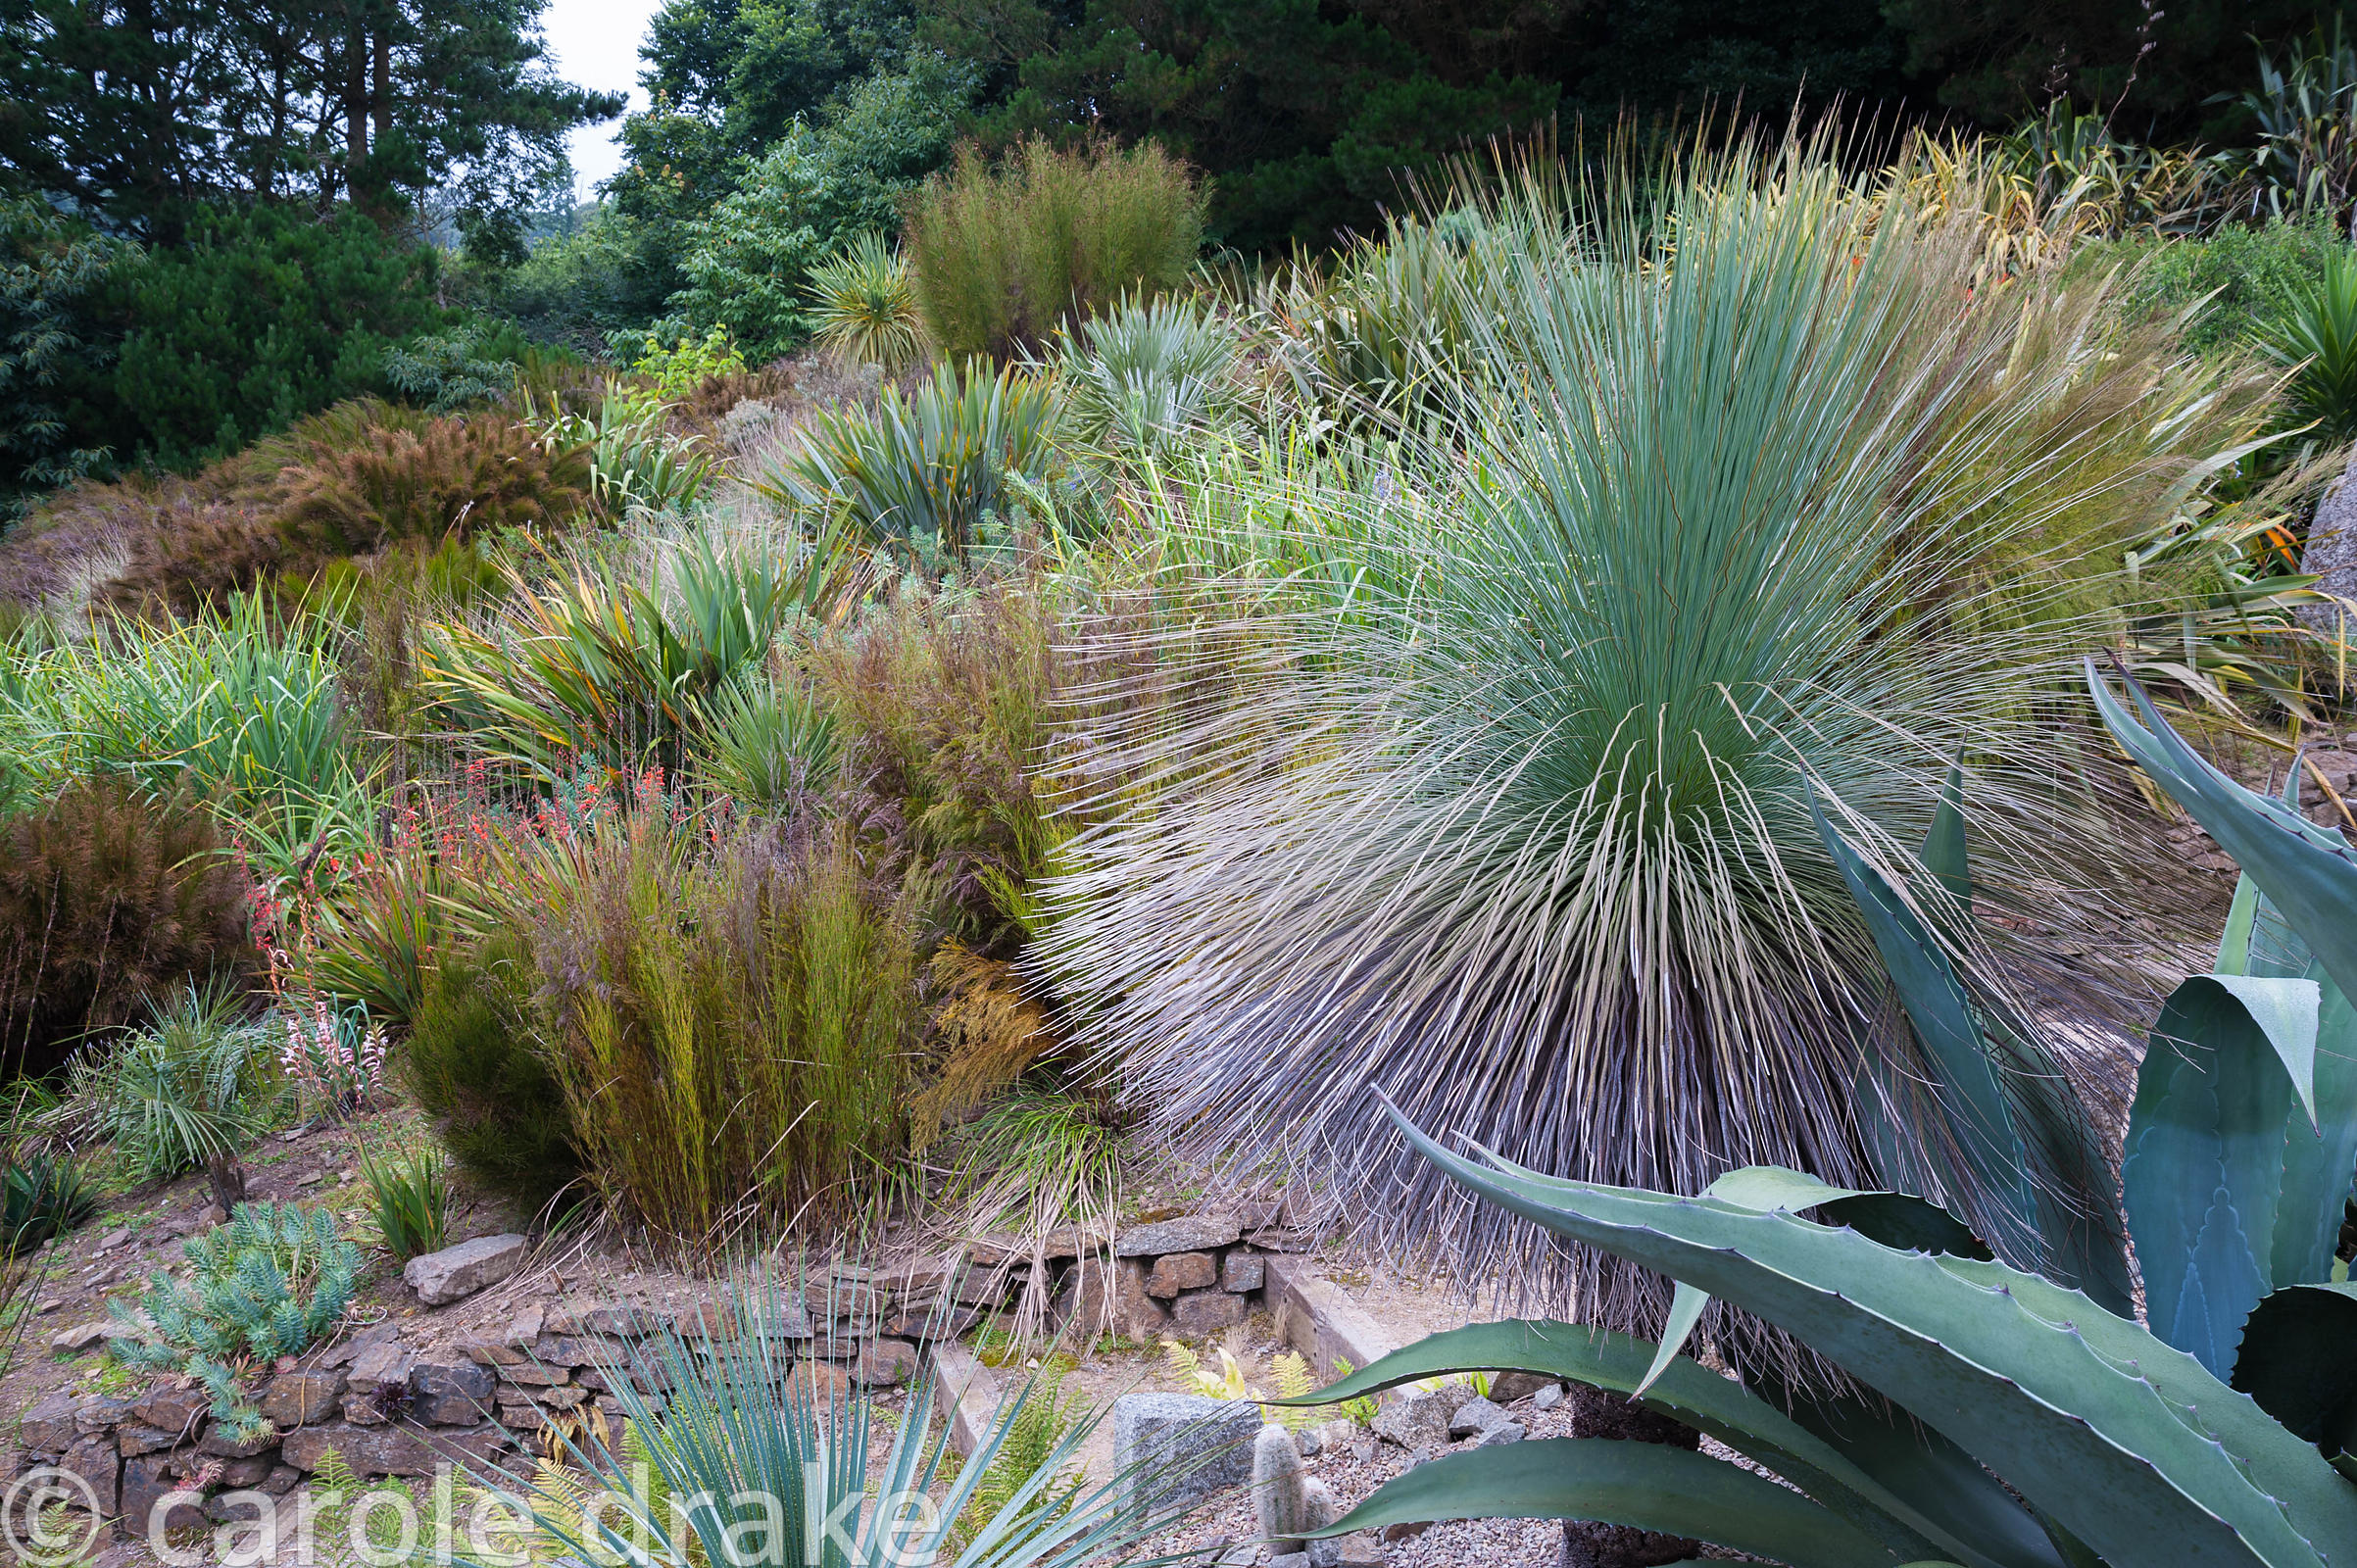 Bold foliage plants on dry banks include the grass tree, Xanthorrhoea glauca, agaves, restios and palms